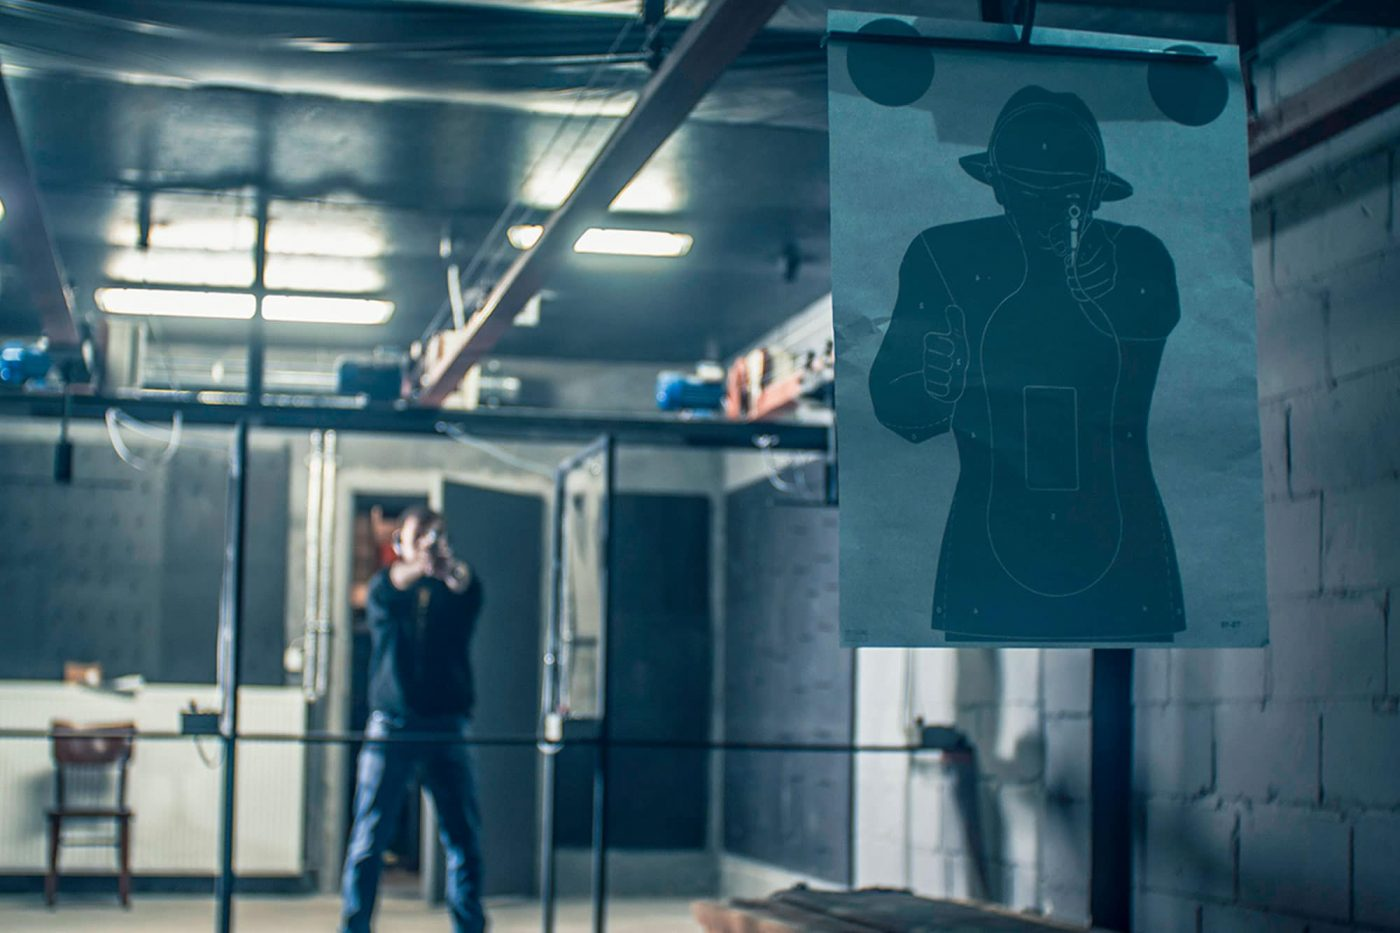 Gun shooting range with a man standing behind